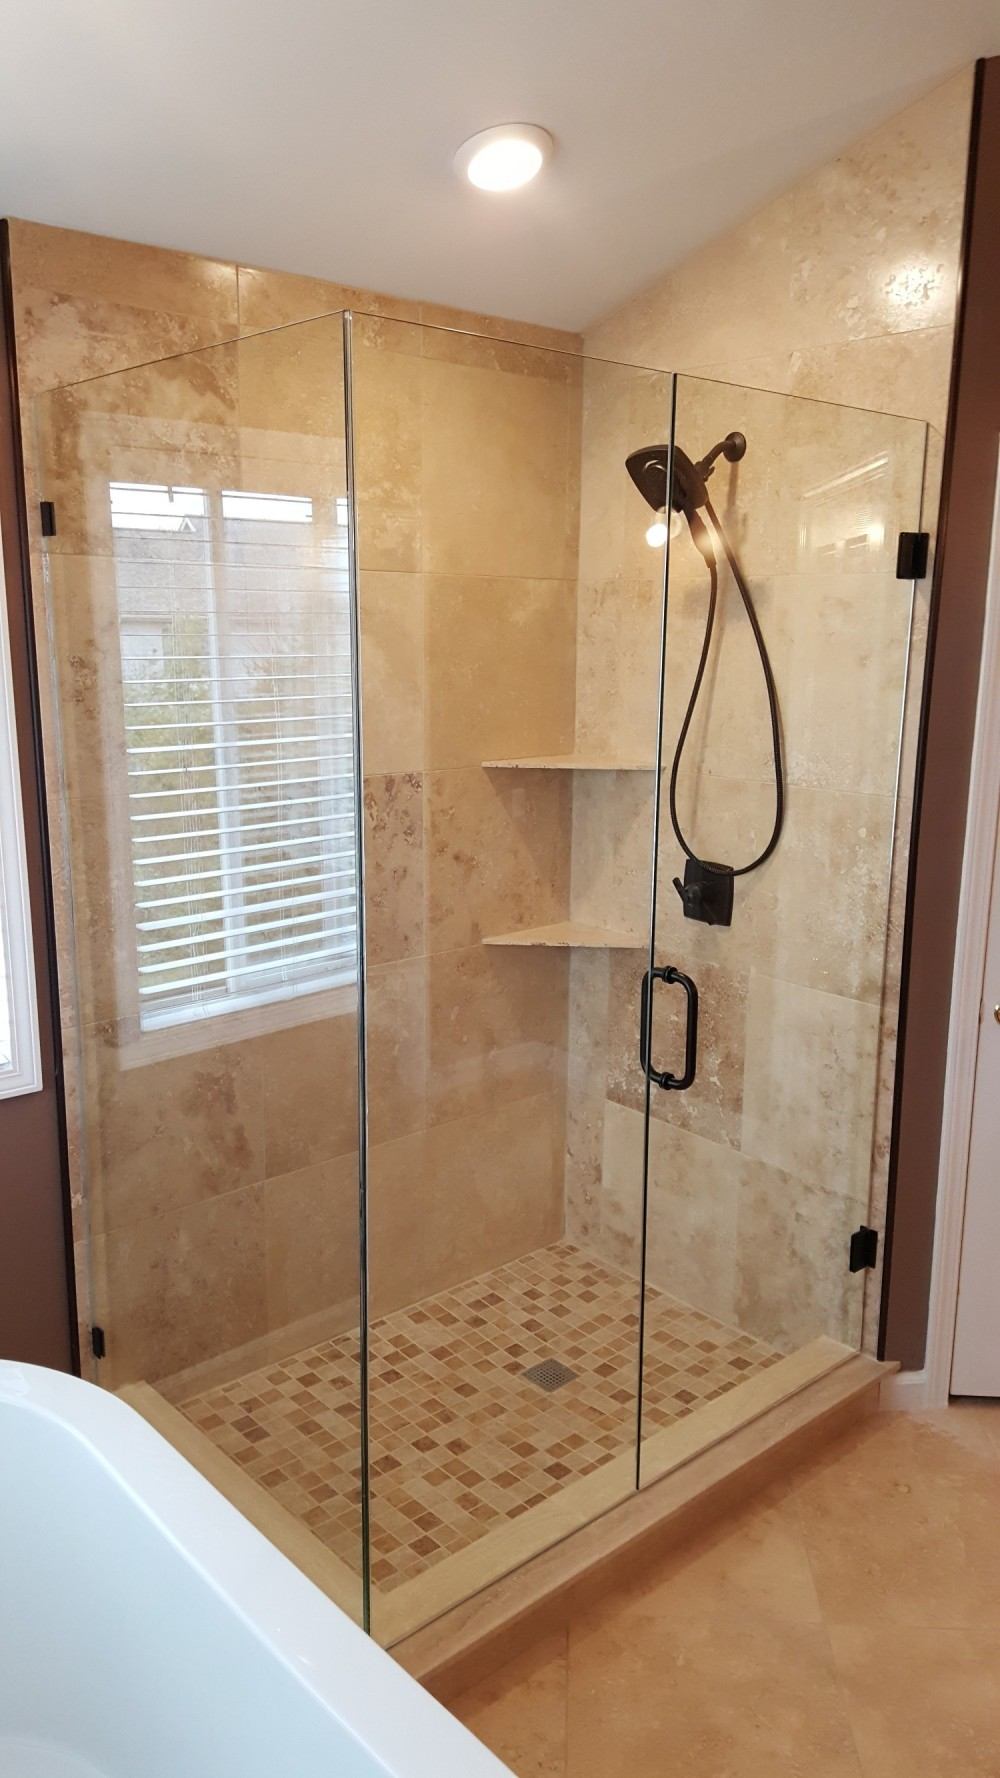 of designer shower door home serial barn design cr frame small laurence medium pro for hardware bumpers glass parts size ideas spaces